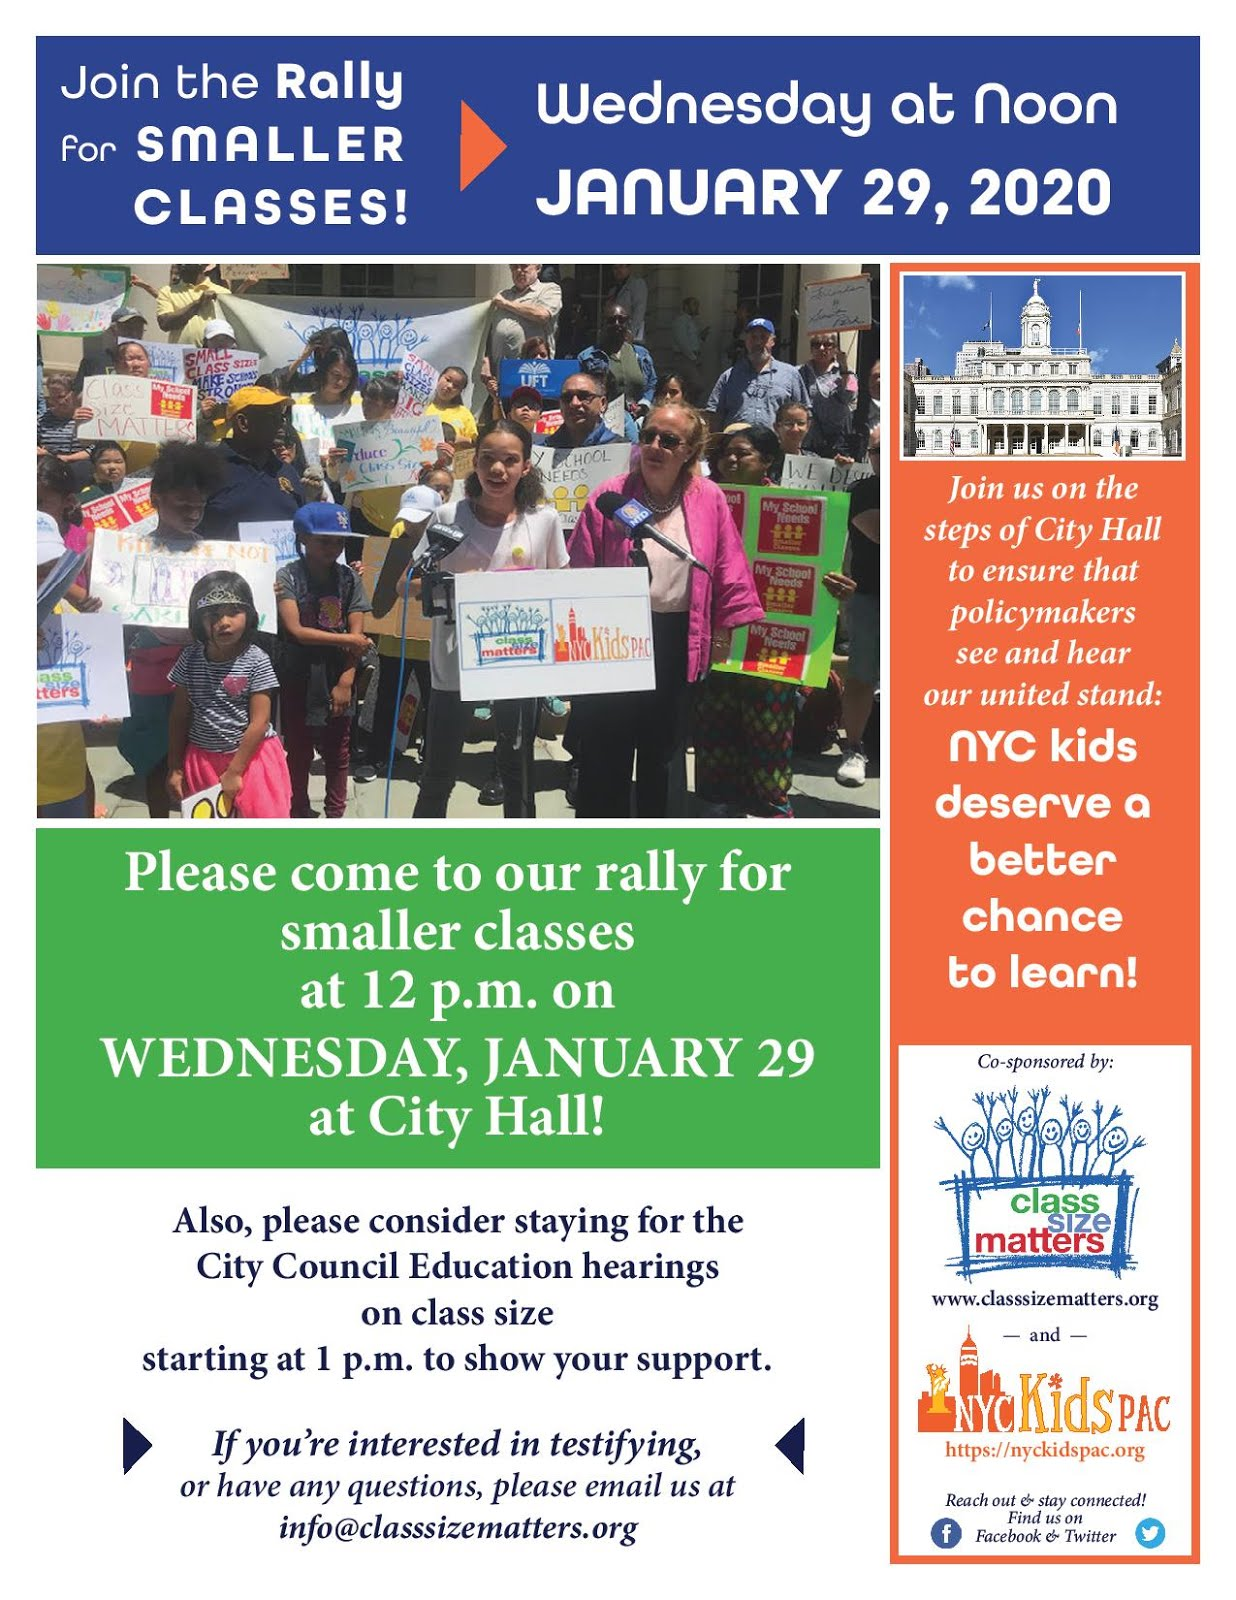 Join the Rally for Smaller Classes!